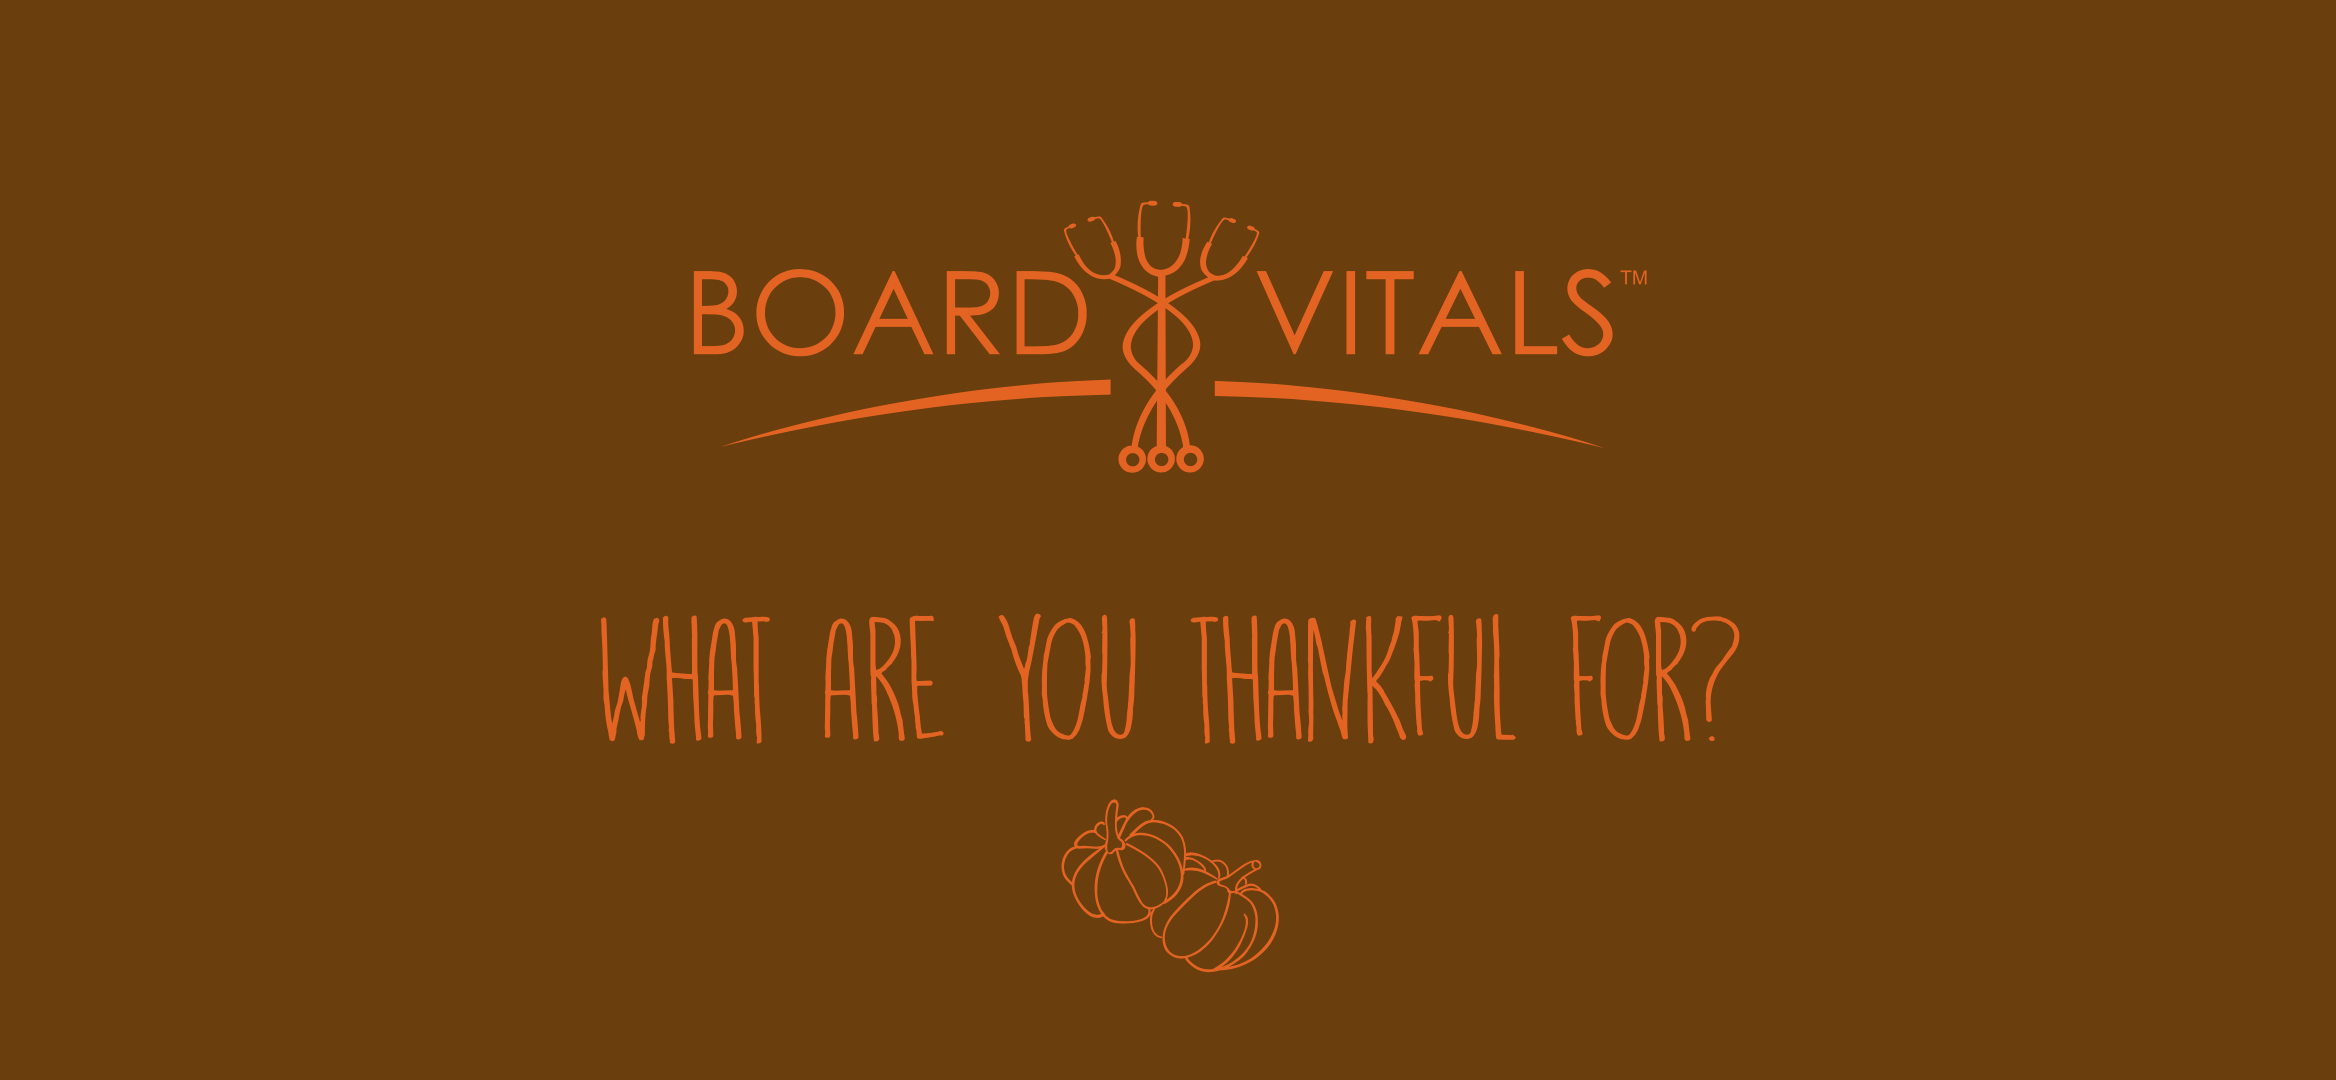 What Are Doctors and Nurses Most Thankful For In 2016?